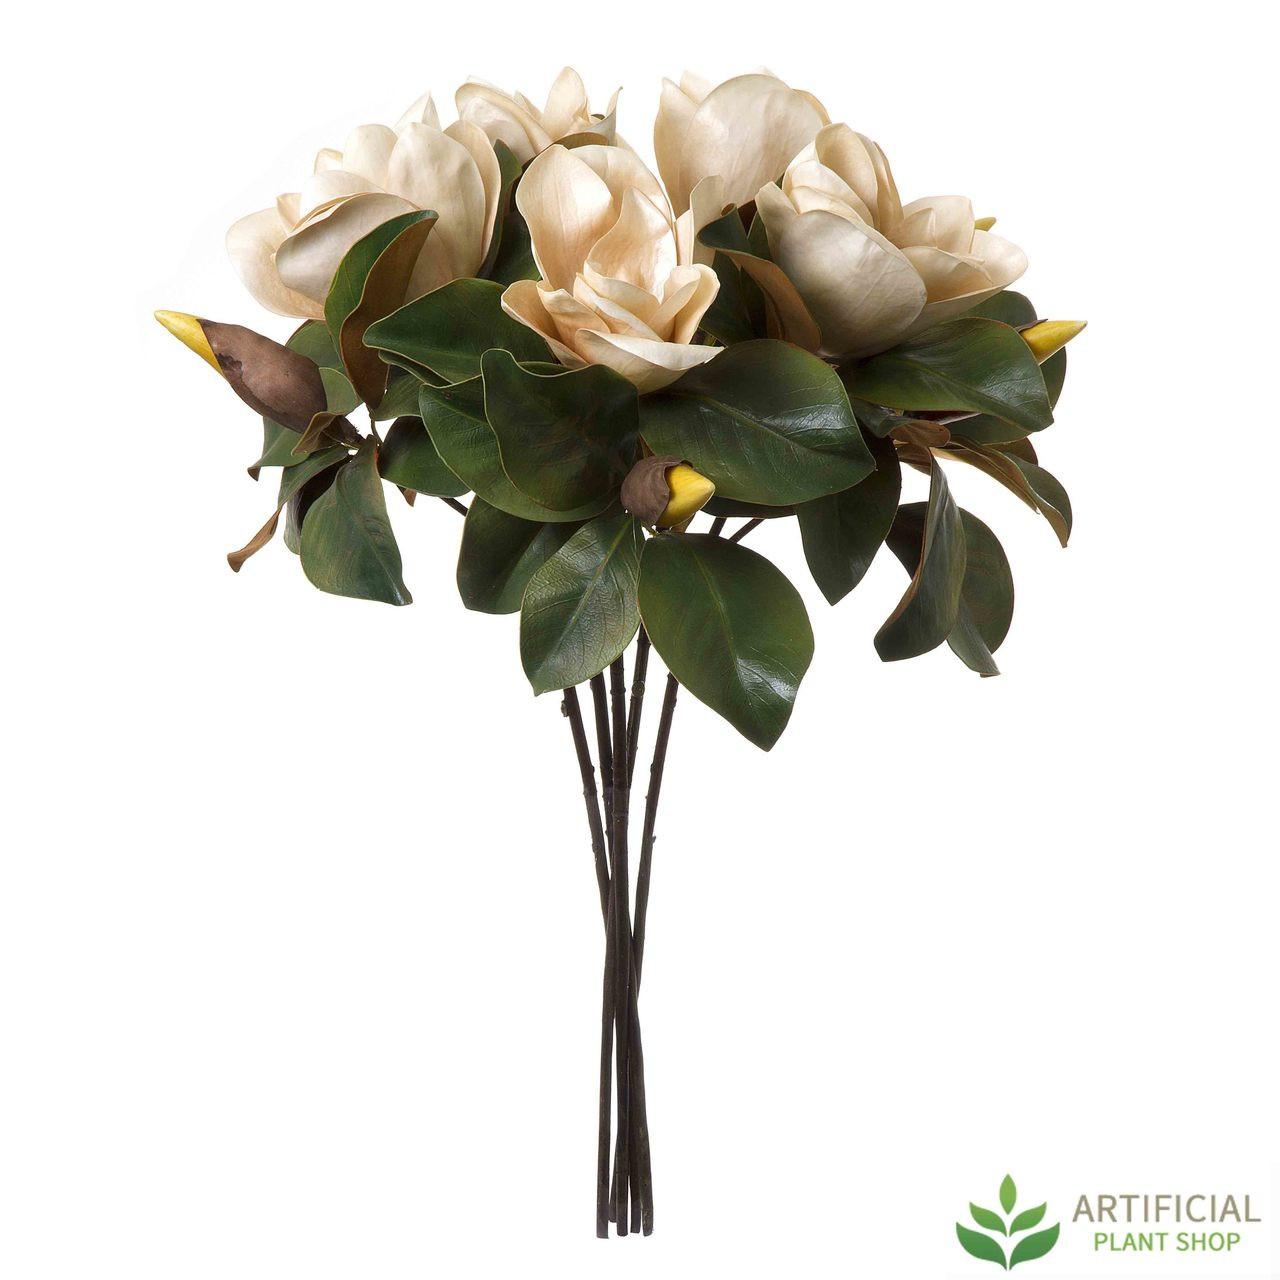 Coffee Magnolia flower bundle